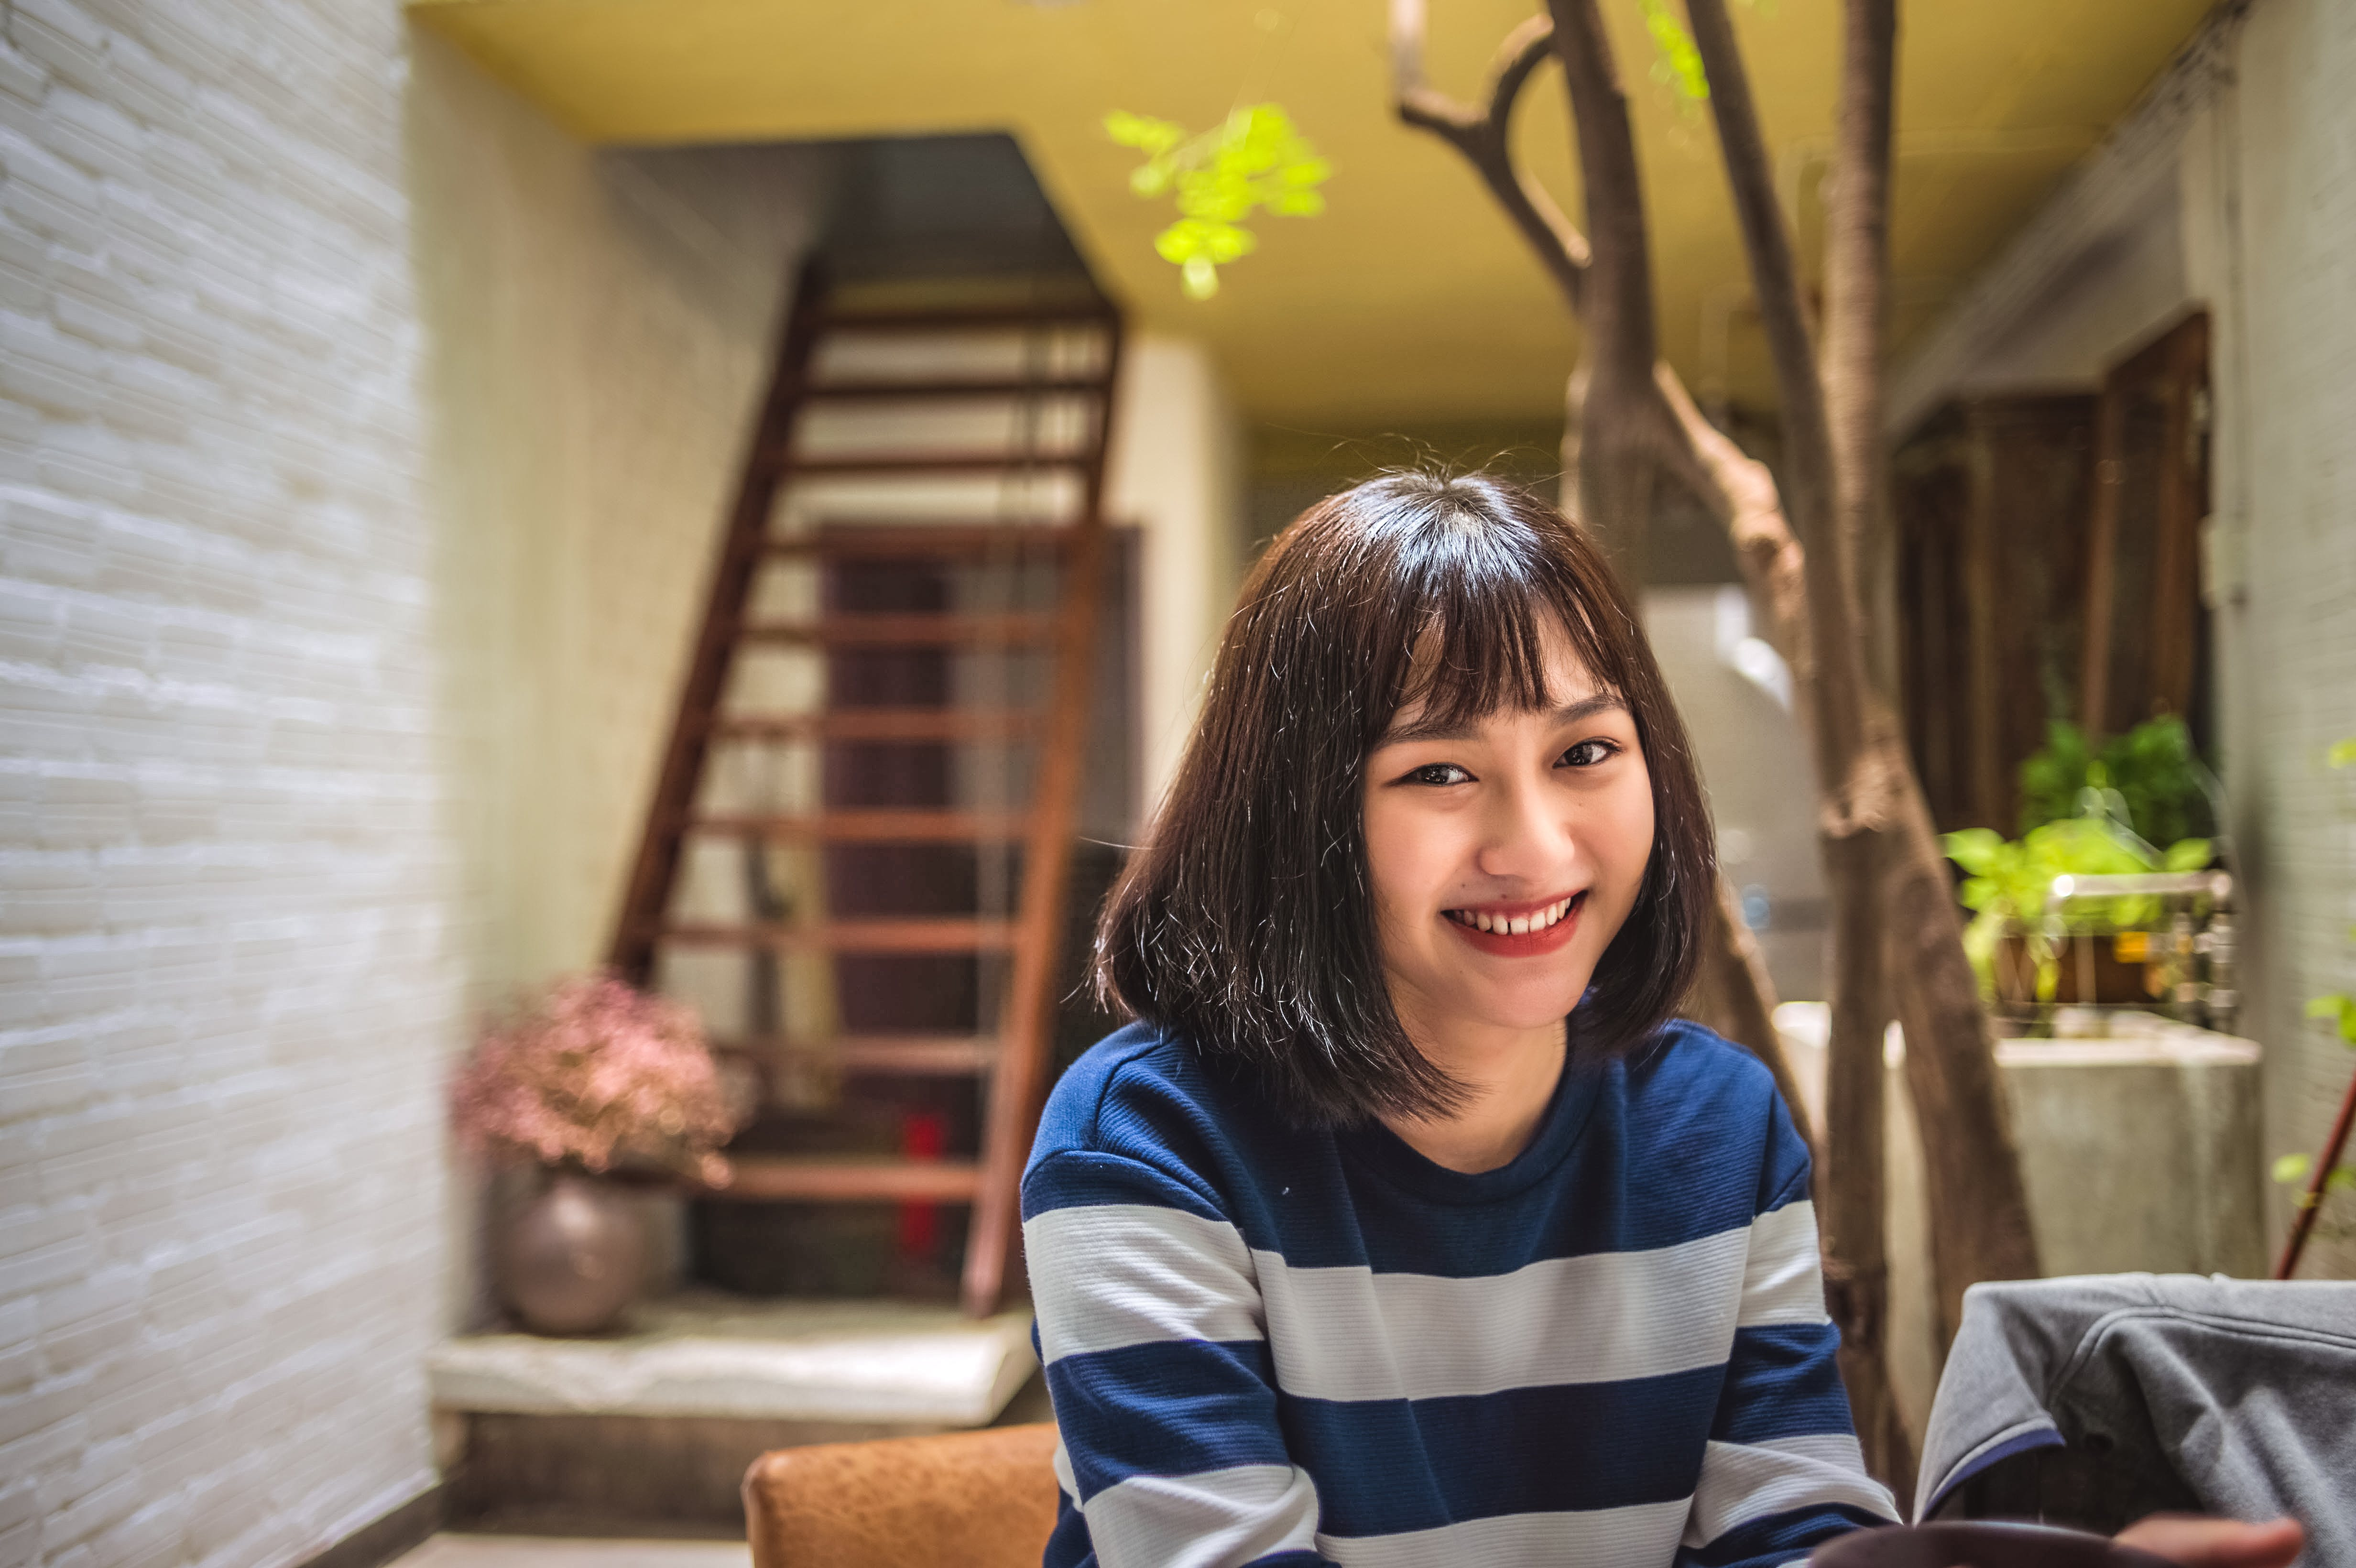 Smiling Woman in Blue and White Striped Shirt